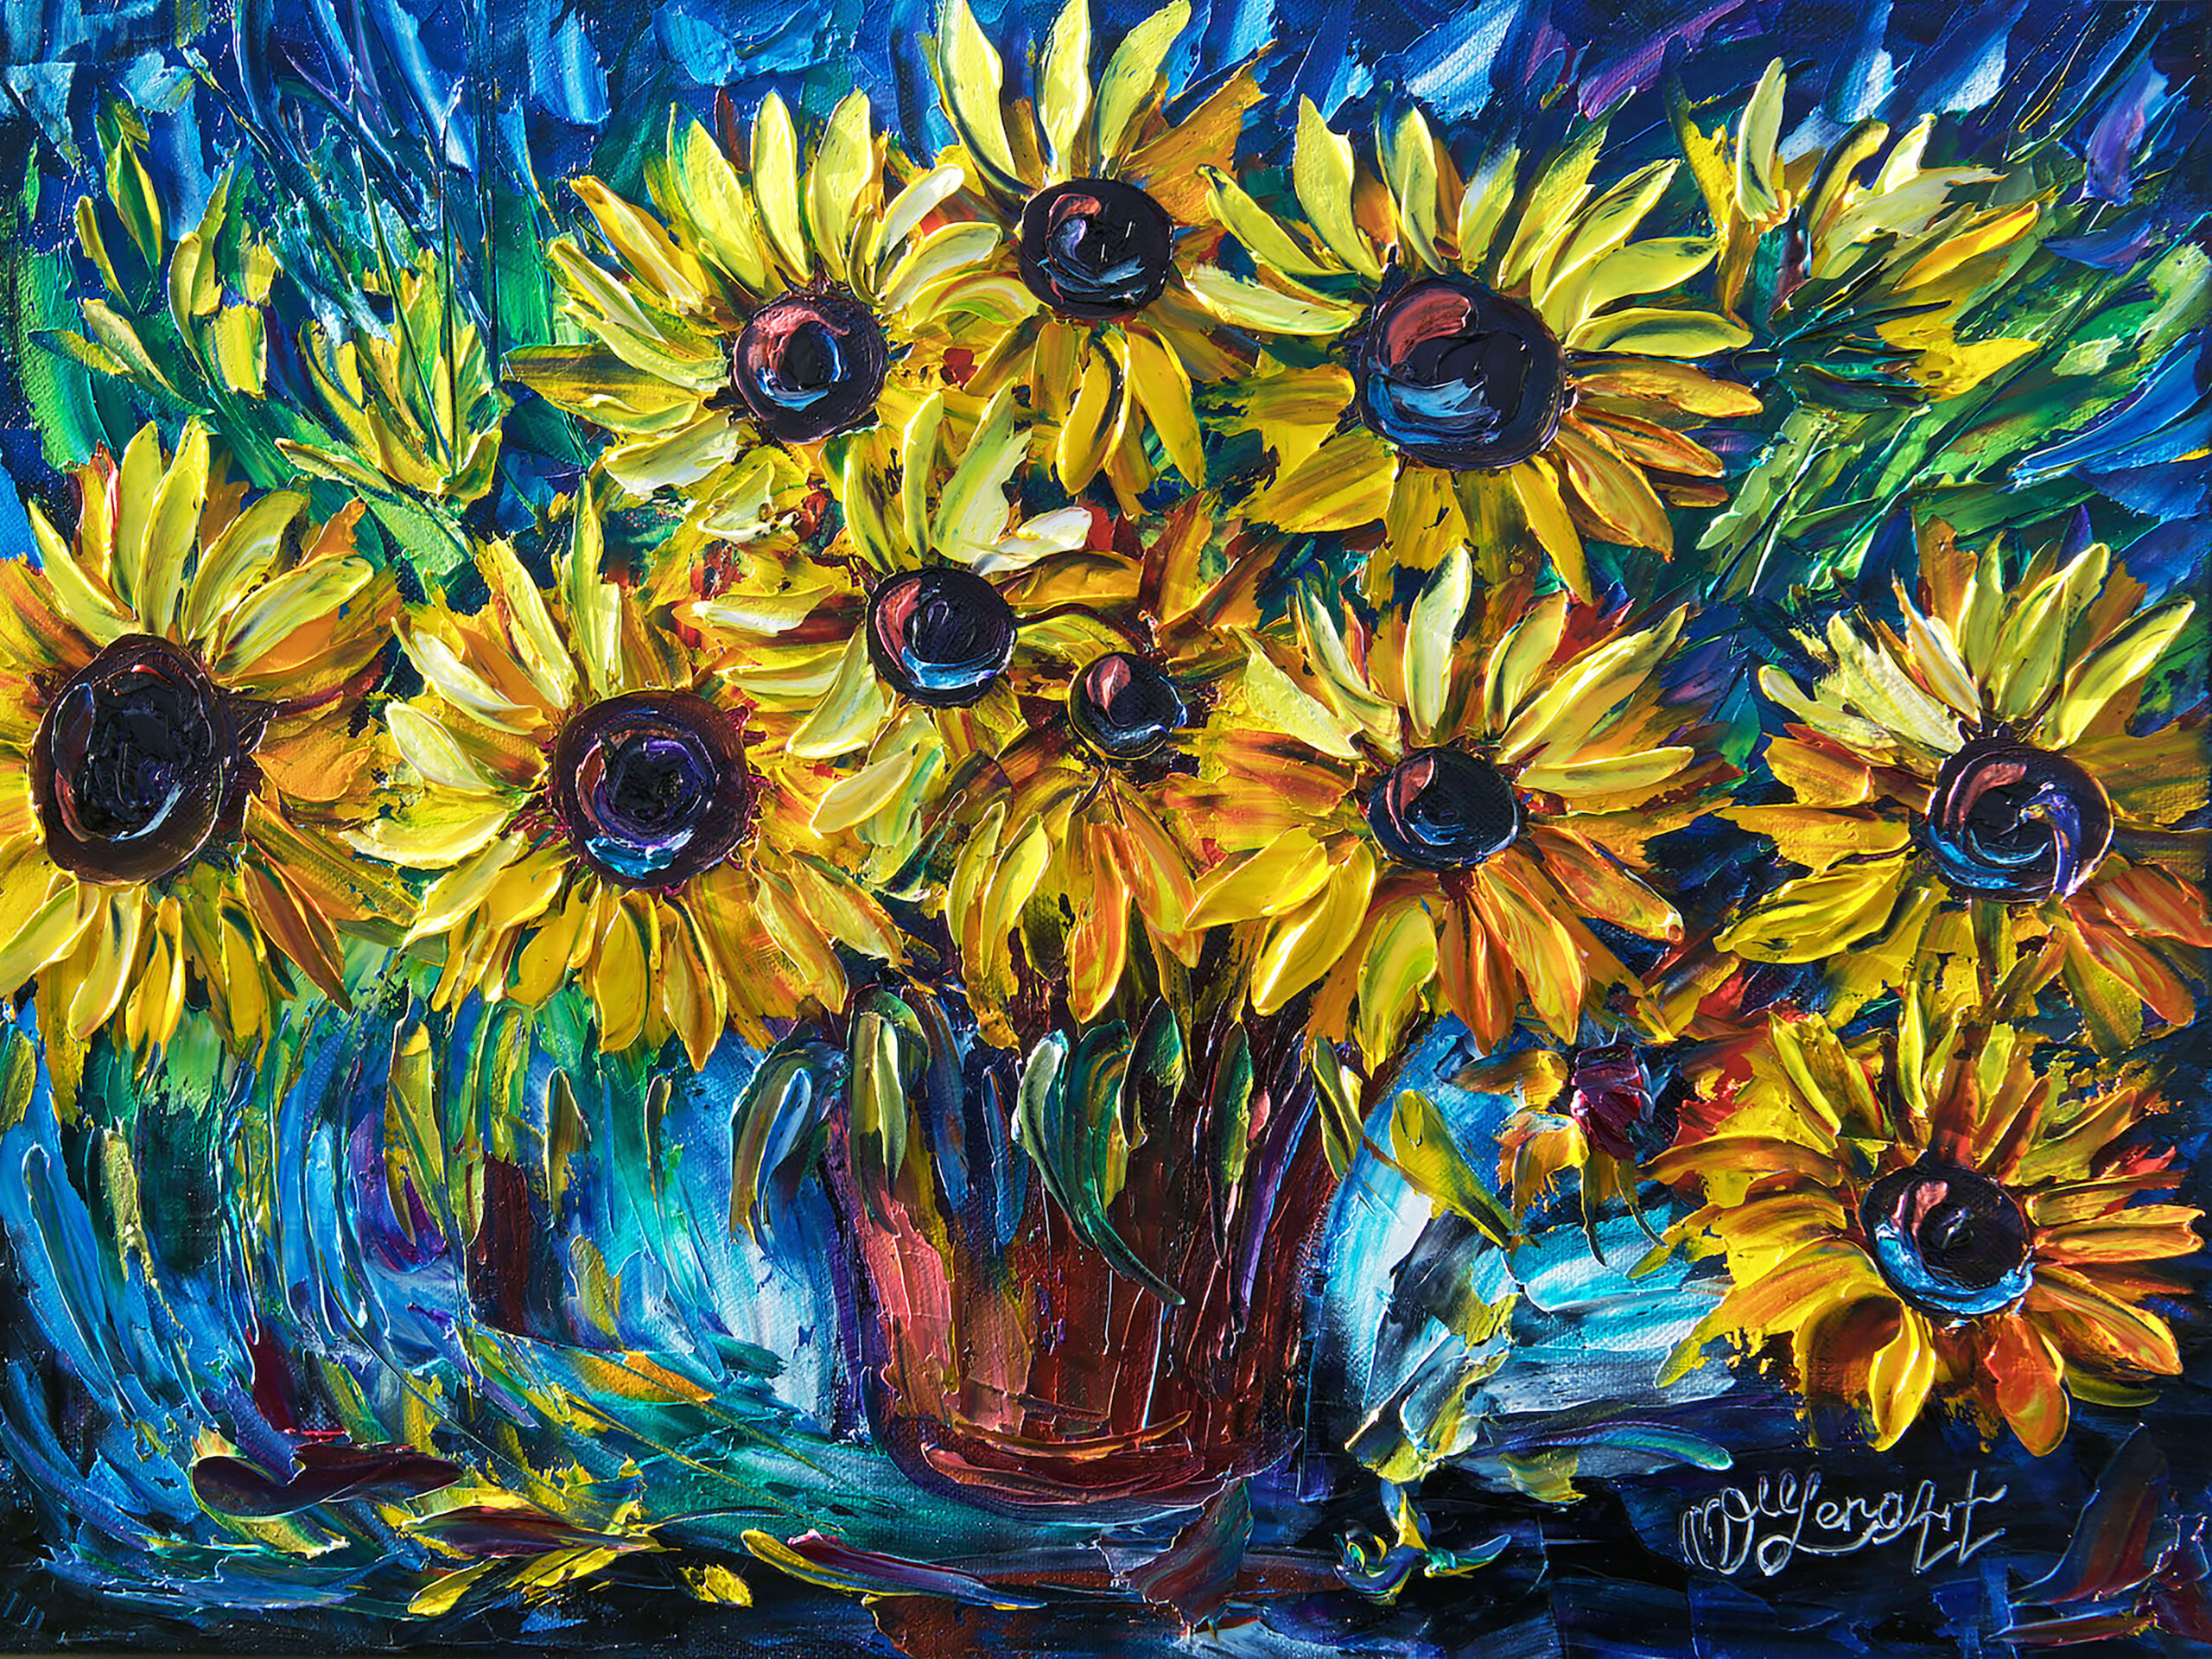 """SUNFLOWERS — Palette knife by Lena Owens @OLena Art """"The sunflower is mine, in a way.""""  ― Vincent van Gogh Another one and as you know – sunflowers – one of my favorite subject. I painting few similar Countryside Sunflowers, and each turned unique and different.  by Lena Owens, Copyright OLena Art.  """"Art evokes the mystery without which the world would not exist"""". – Rene Magritte PRINT DETAILS  - Giclee prints are high-resolution digital prints that meticulously capture the rich color and subtle texture of original art.  - Only archival inks and acid-free materials are used to ensure your print lasts a lifetime without fading.  - Made to order by pixels, redbubble, society6 or olenaart.me RISK-FREE RETURNS  - If you don't love it, return it in 30 days for a full refund. PRINT OPTIONS  - Available in multiple sizes and materials to perfectly suit your space.  - Optional custom framing services save you time and hassle.  - Framed & mounted prints arrive """"ready-to-hang"""" with pre-attached hanging wire, hooks and nails. ORDERS & SHIPPING  - Ready to ship in 3-4 business days.  - Shipped worldwide.  One of the things that makes me inspired is an example of many artists I follow and trying to learn, who are using traditional palette knife technique: Leonid Afremov, Lyudmila Agrich, Maya Eventov, Mona Edulesco, Jessilyn Park! All of them are great example, how to use bright, bold application of thick paint layers! Way to go! sunflower, pink, red, nature, floral, spring, country, flowers, summer, garden, fragile, bright, original, artwork, palette, knife, oil, painting, painting, on, canvas, yellow, color, bright, colors, thick, impasto, thick, paint, layers, lena, owens, art, olena, art, painting, knife painting, oil painging, palette knife, original artowrk, thick paint layers, lena owens, olena art, sunflowers, original painting, floral, colourful, home decor, colorado artist, contemporary, modern art, fine art, sunflower pink red nature floral spr"""